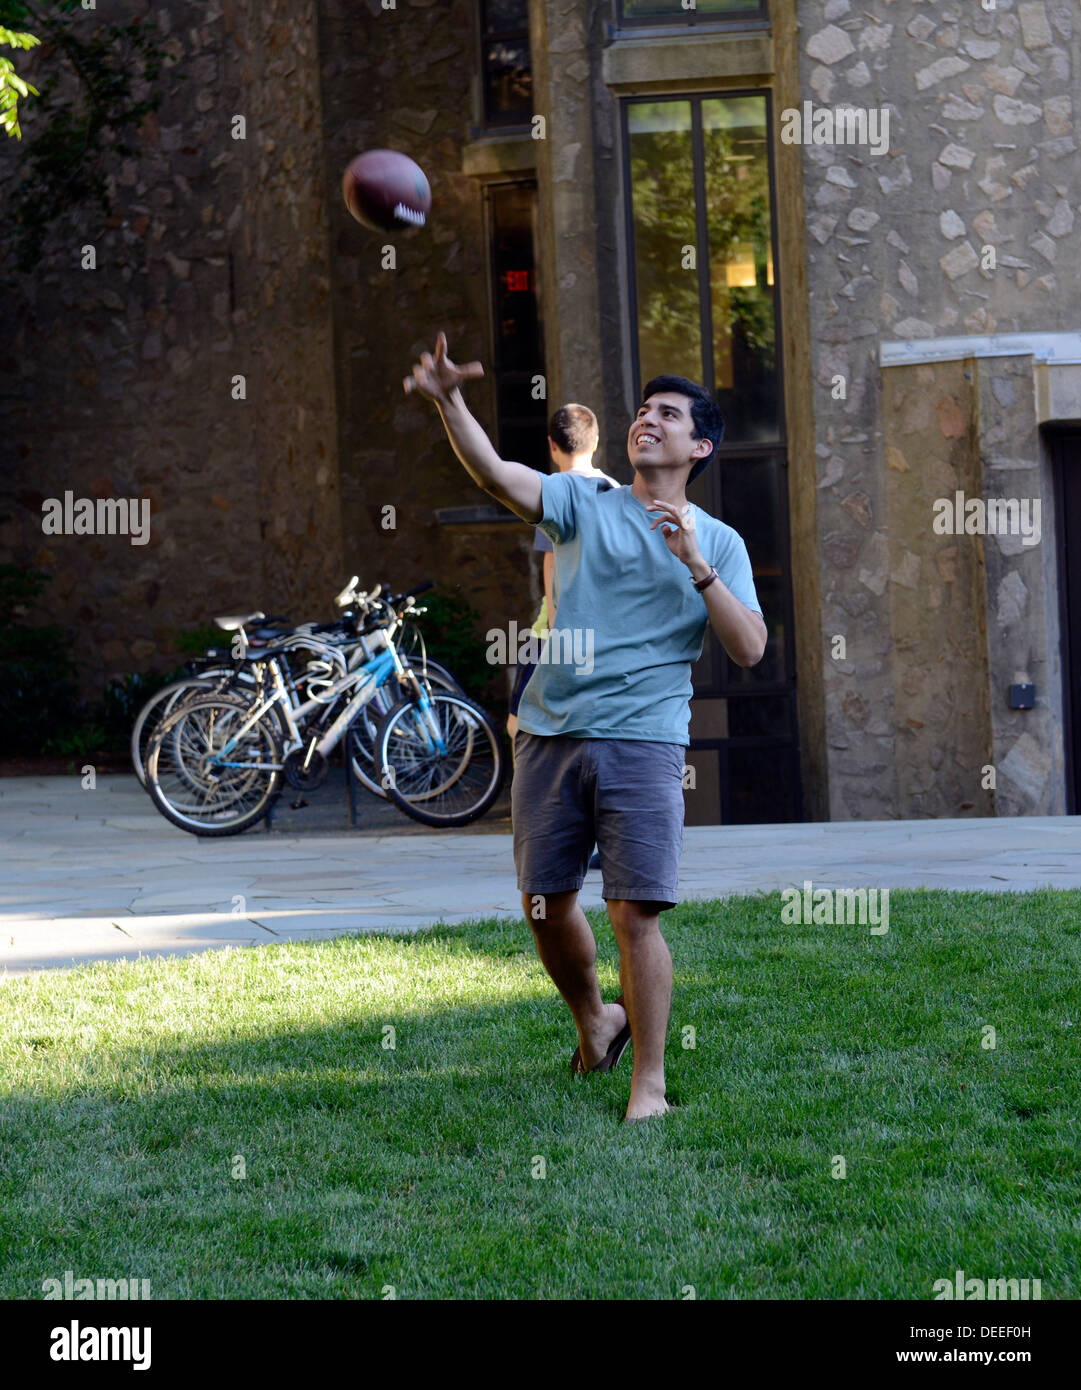 Yale University students attending summer school plays catch after dinner at Morse Residential College. - Stock Image